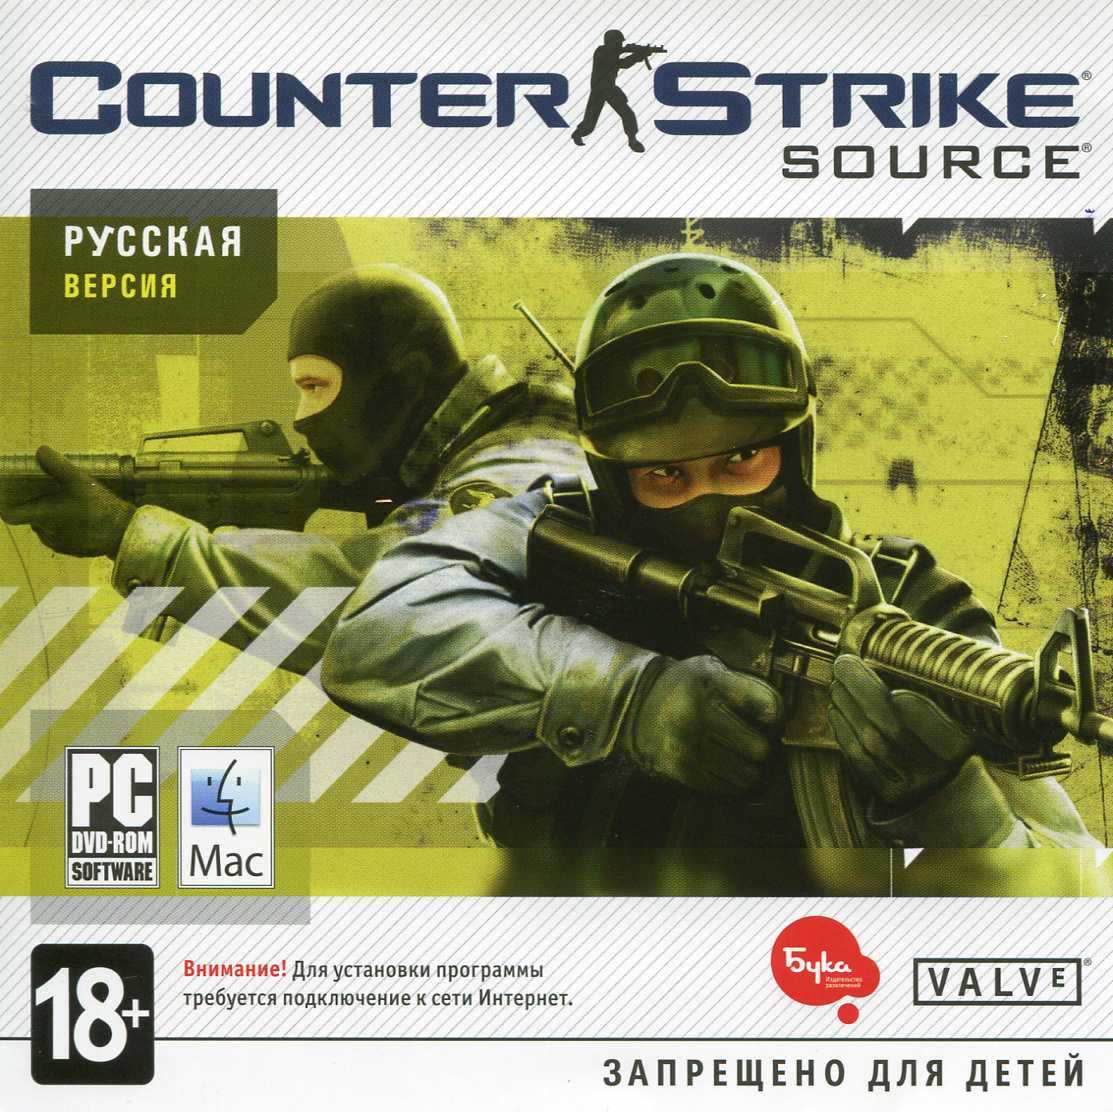 Скачать Counter-Strike: Source v34 No-Steam [RUS](Торрент)